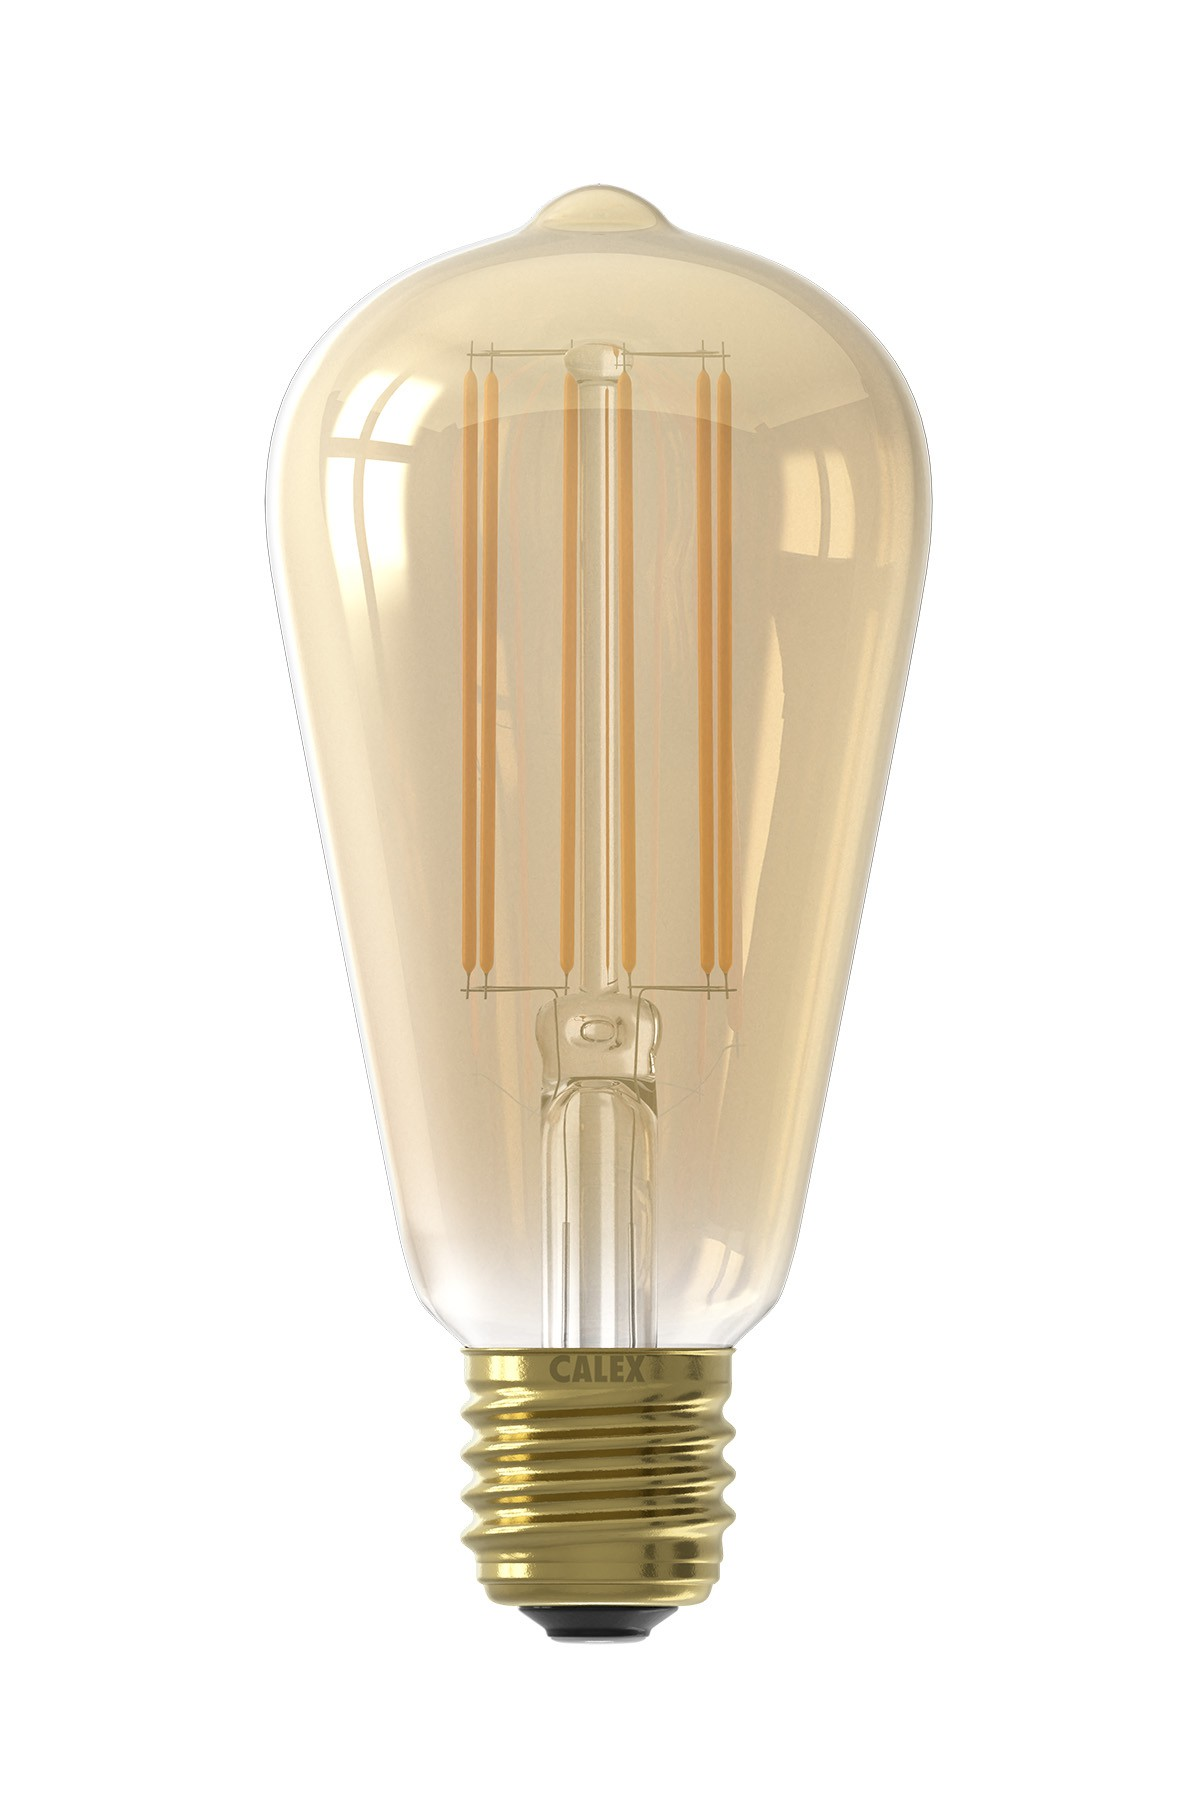 Filament LED Dimmable Rustic Lamps 240V 4,0W - Calex